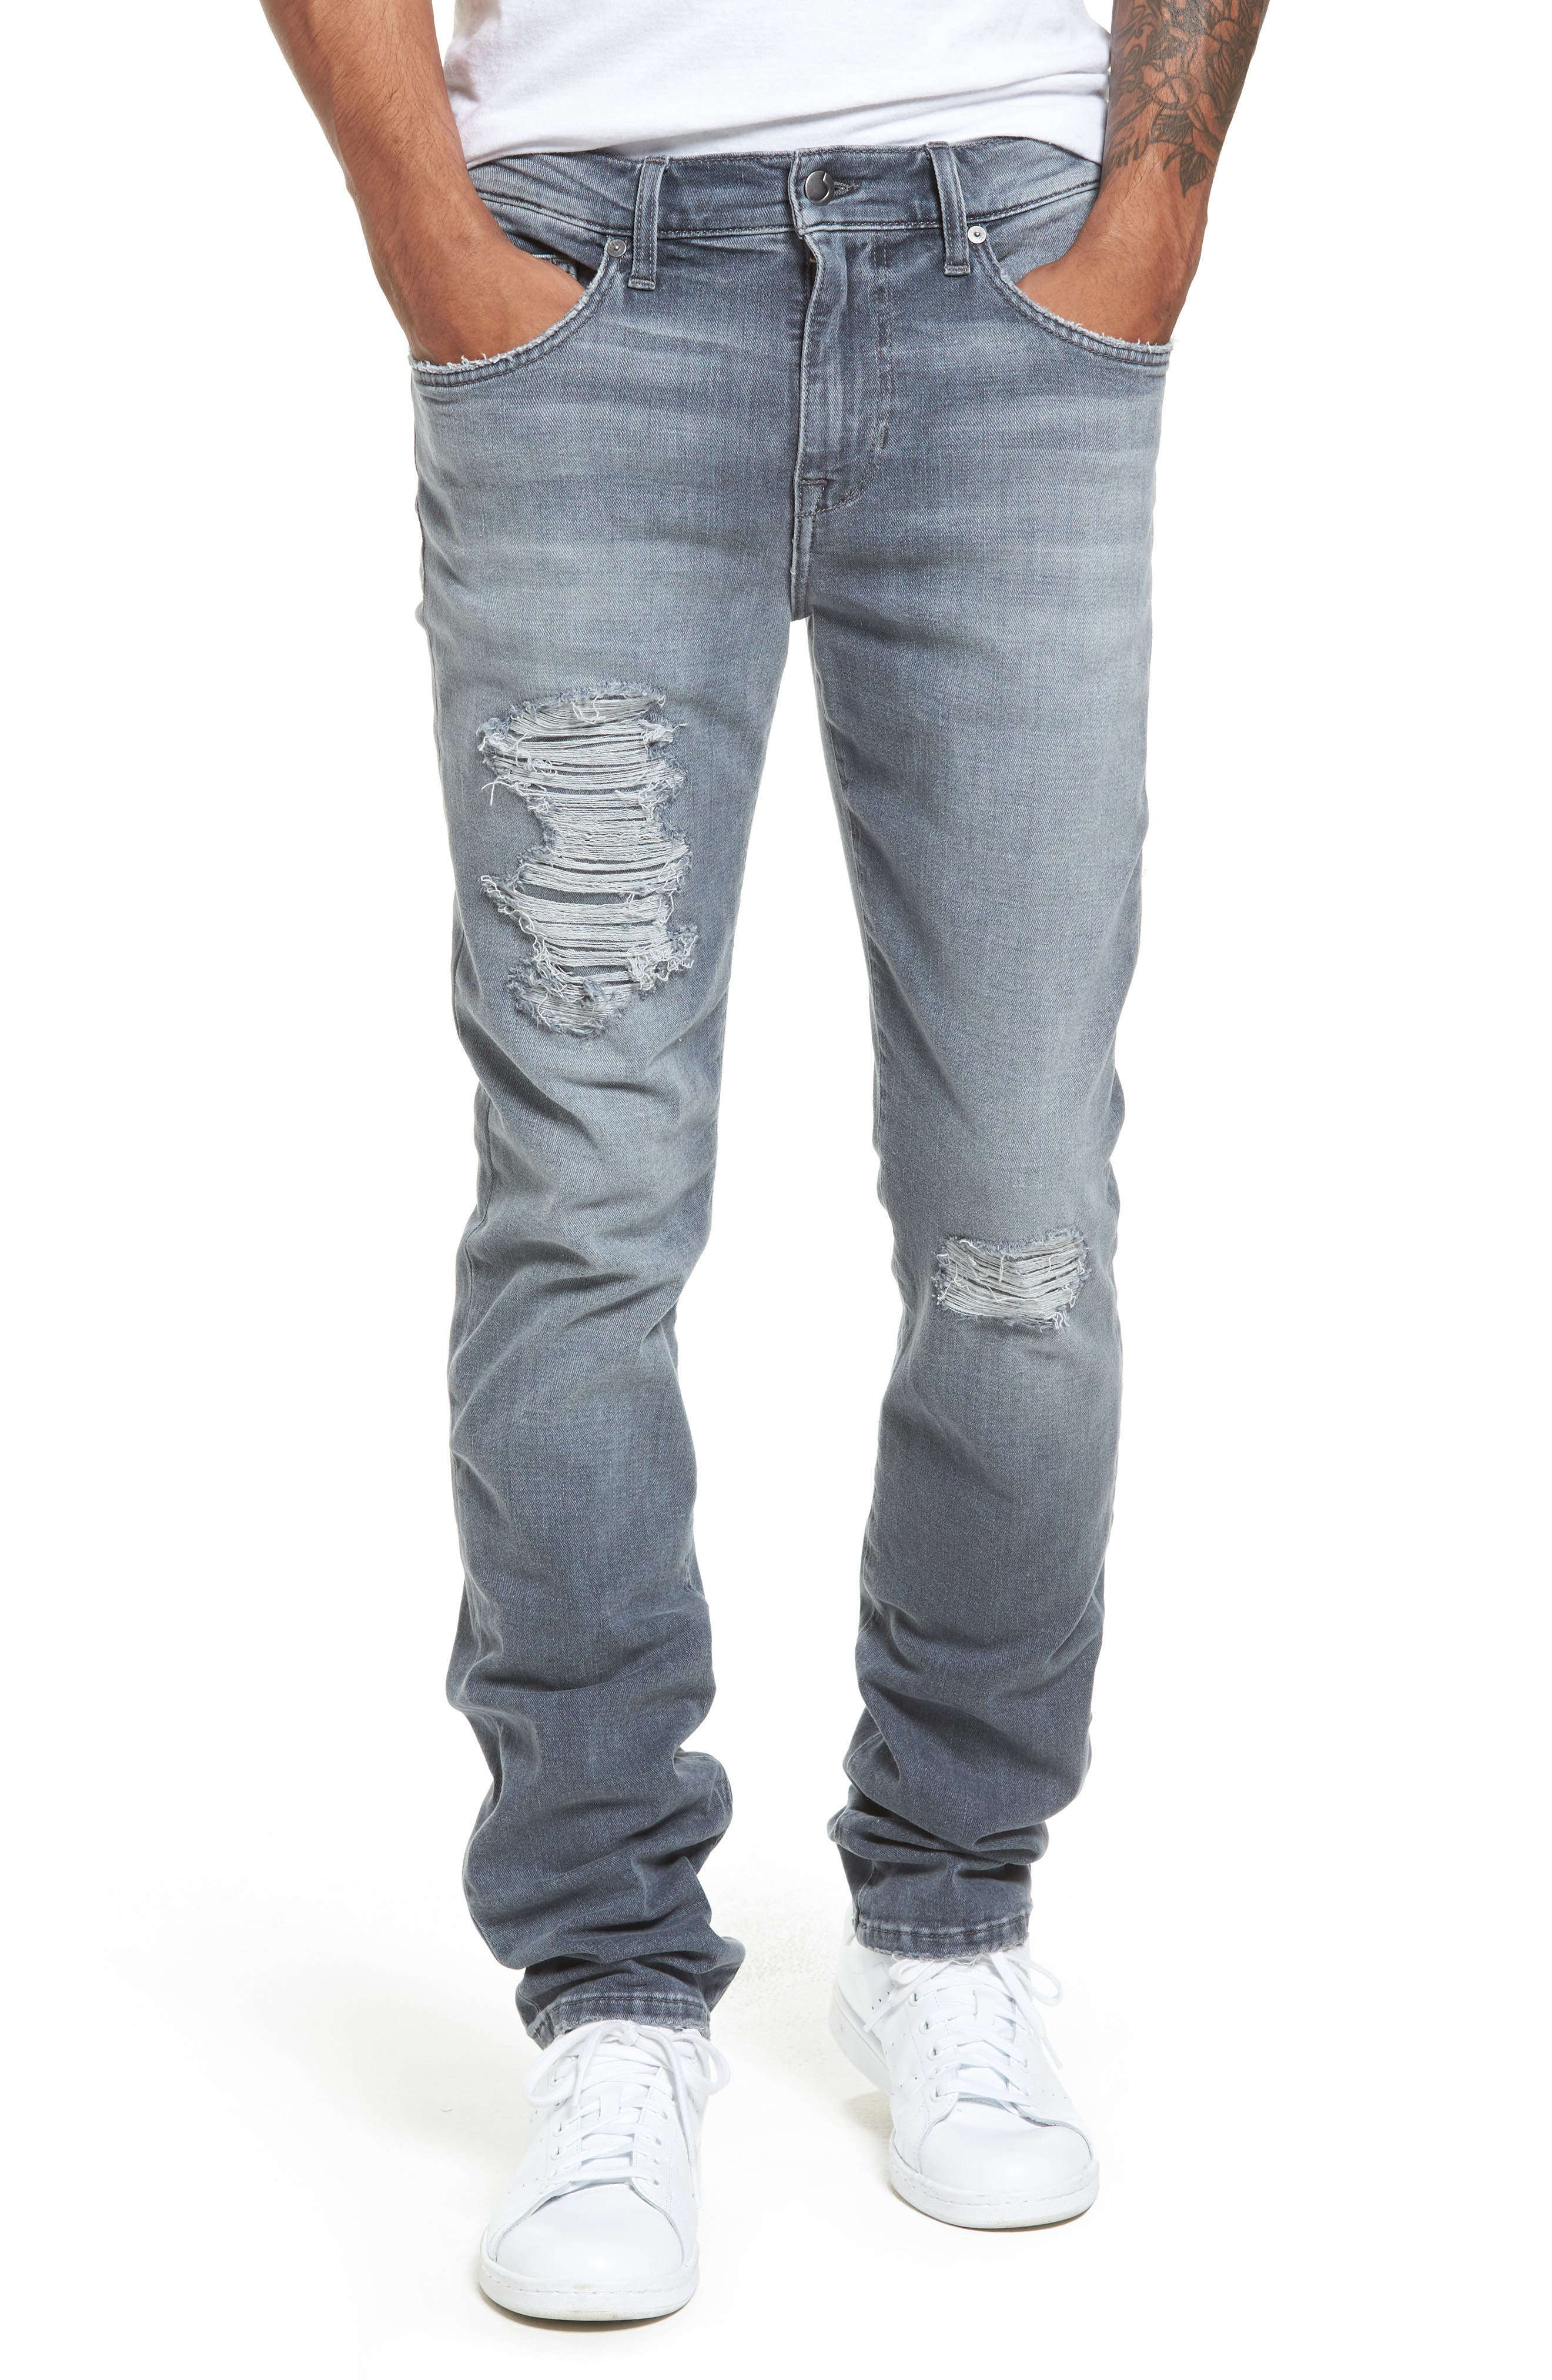 Brixton Distressed Slim Straight Fit Jeans,                         Main,                         color, Frehley